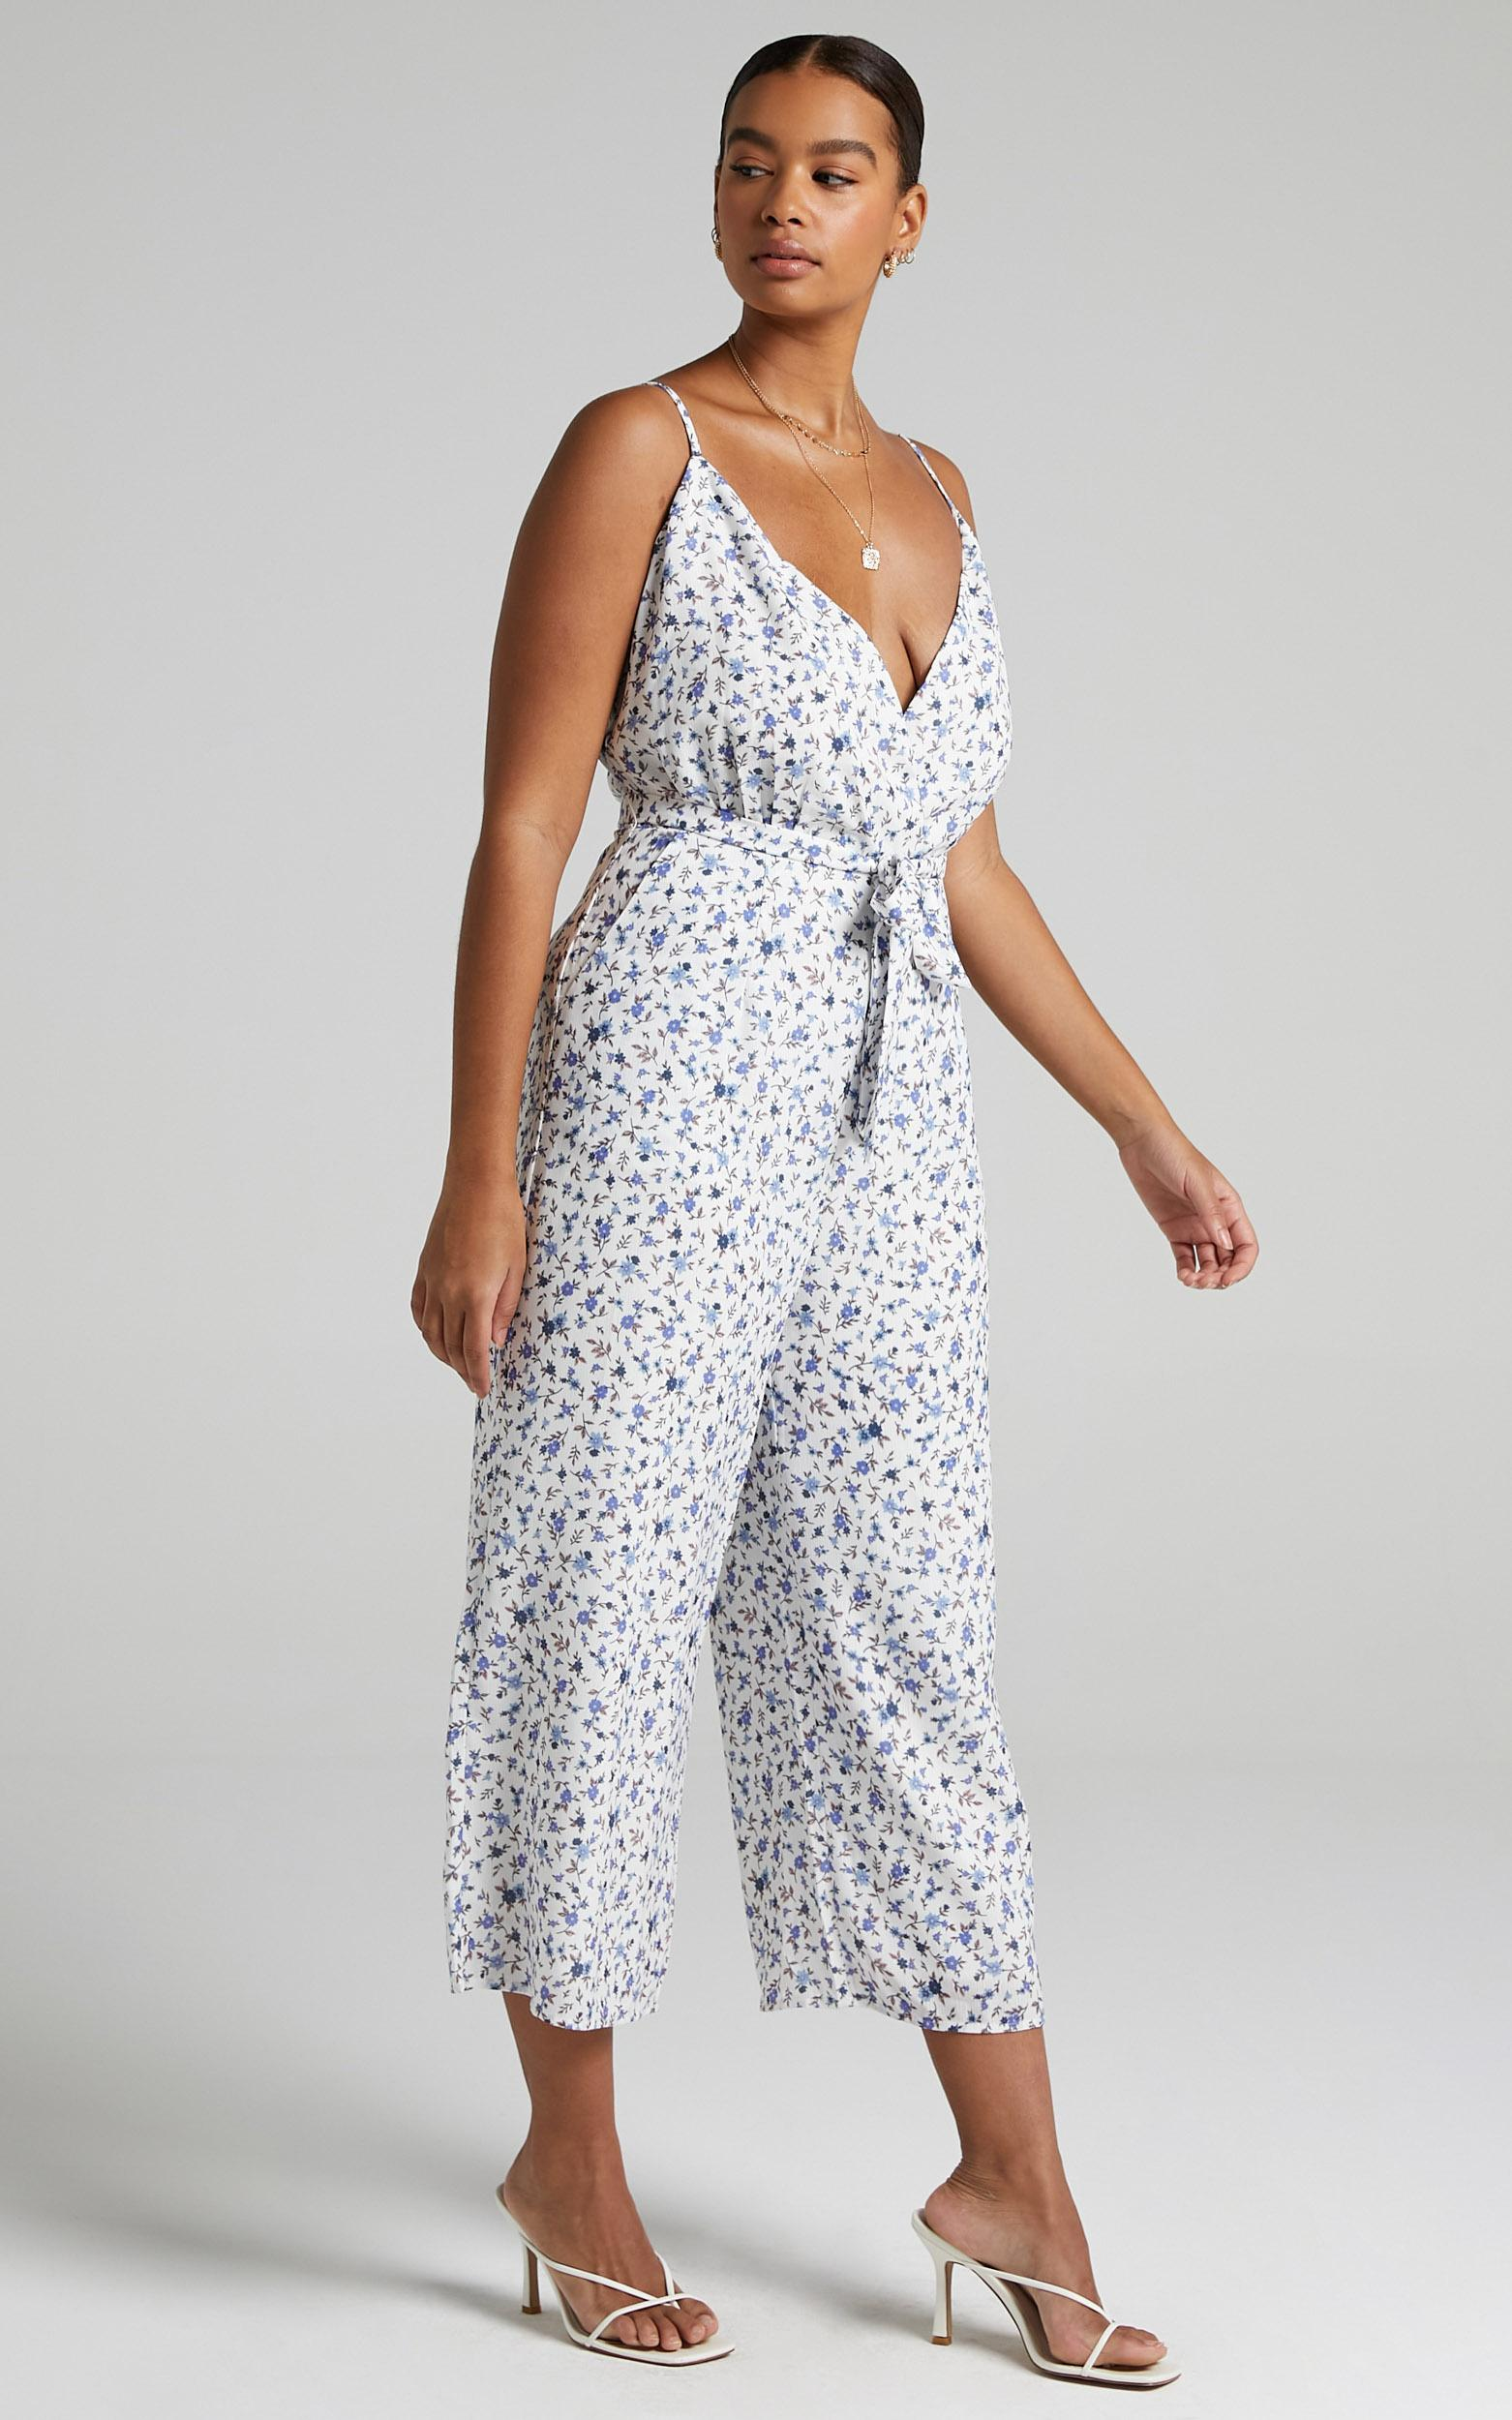 Thought Provoking Jumpsuit in White Floral - 04, WHT2, hi-res image number null